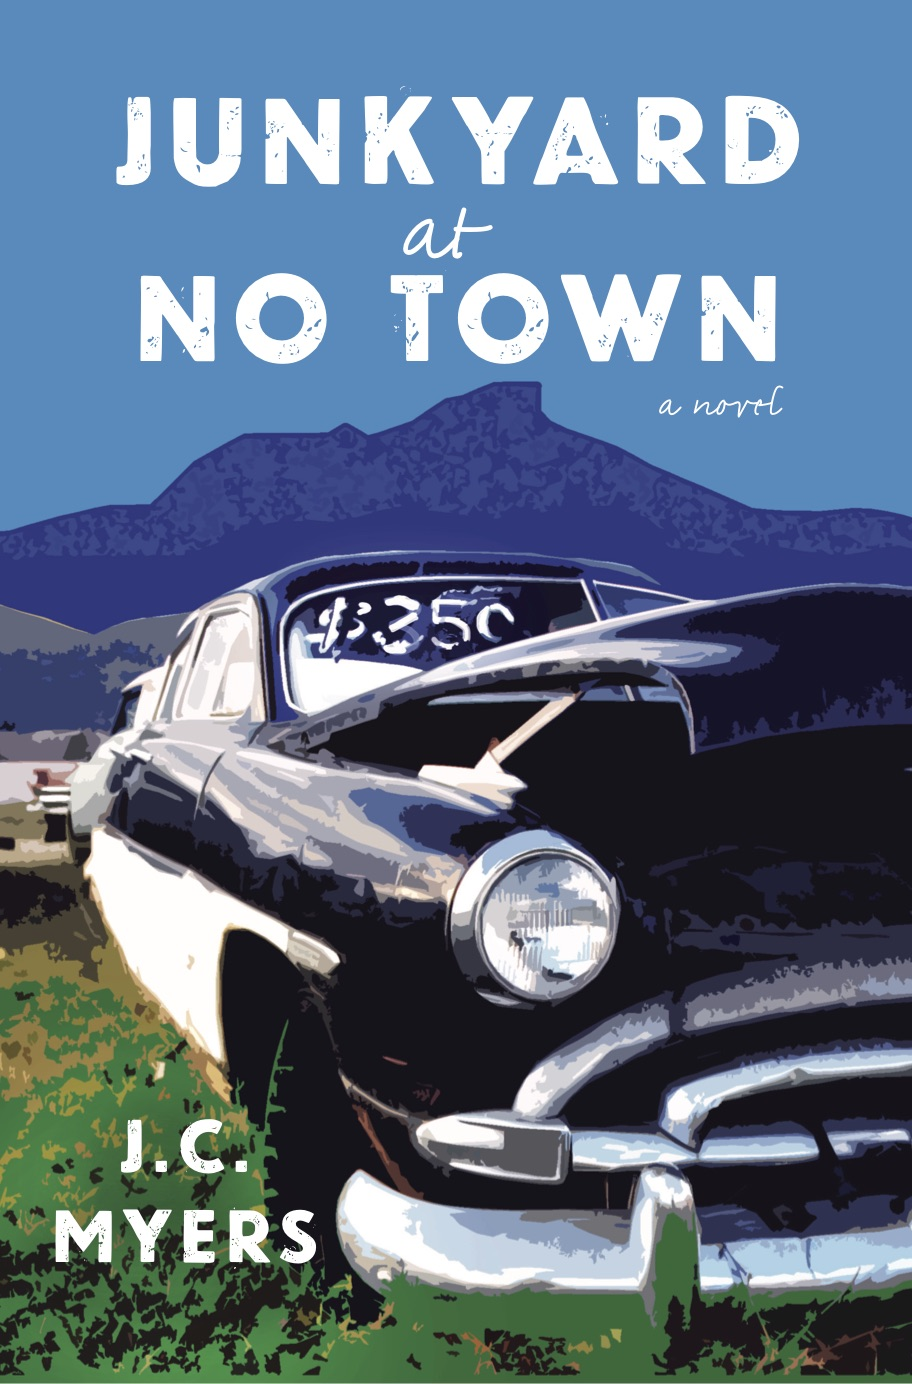 JunkYard-at-No-Town-Book-Cover.jpg